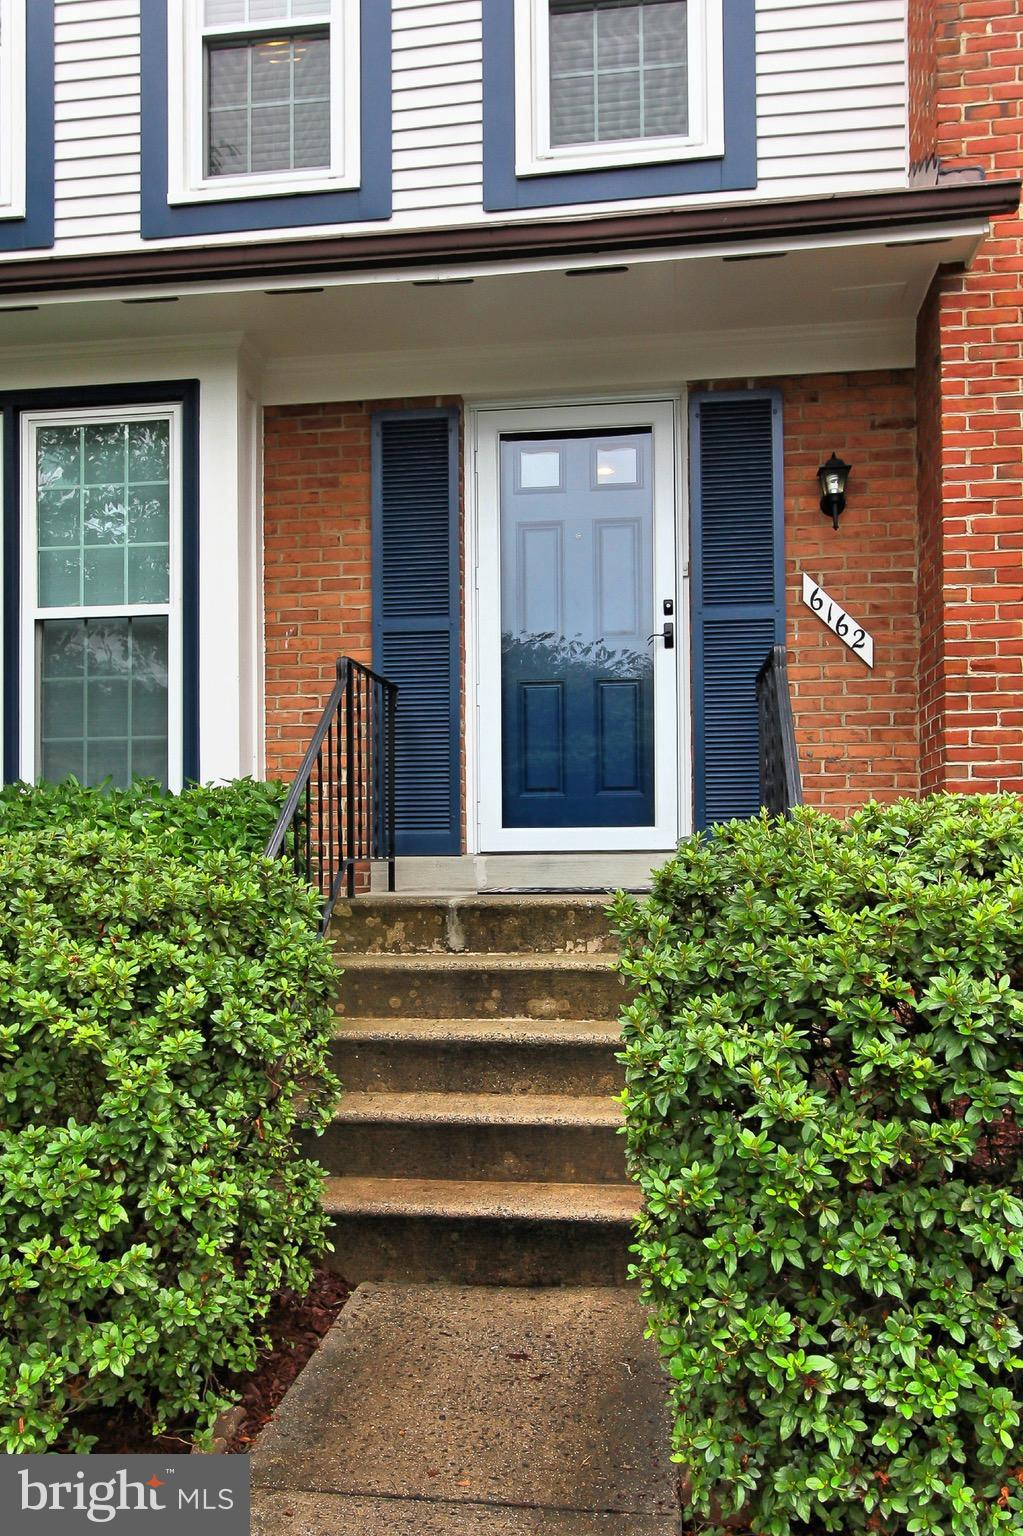 This home has been VERY nicely renovated and is ready for you.  Updated Kitchen and Master Bath, New windows and Doors, new recessed lighting everywhere, fresh paint, new carpet and hardwoods, composite deck and so many other improvements.  This is a must see.  Call your Realtor today to set up a showing!!